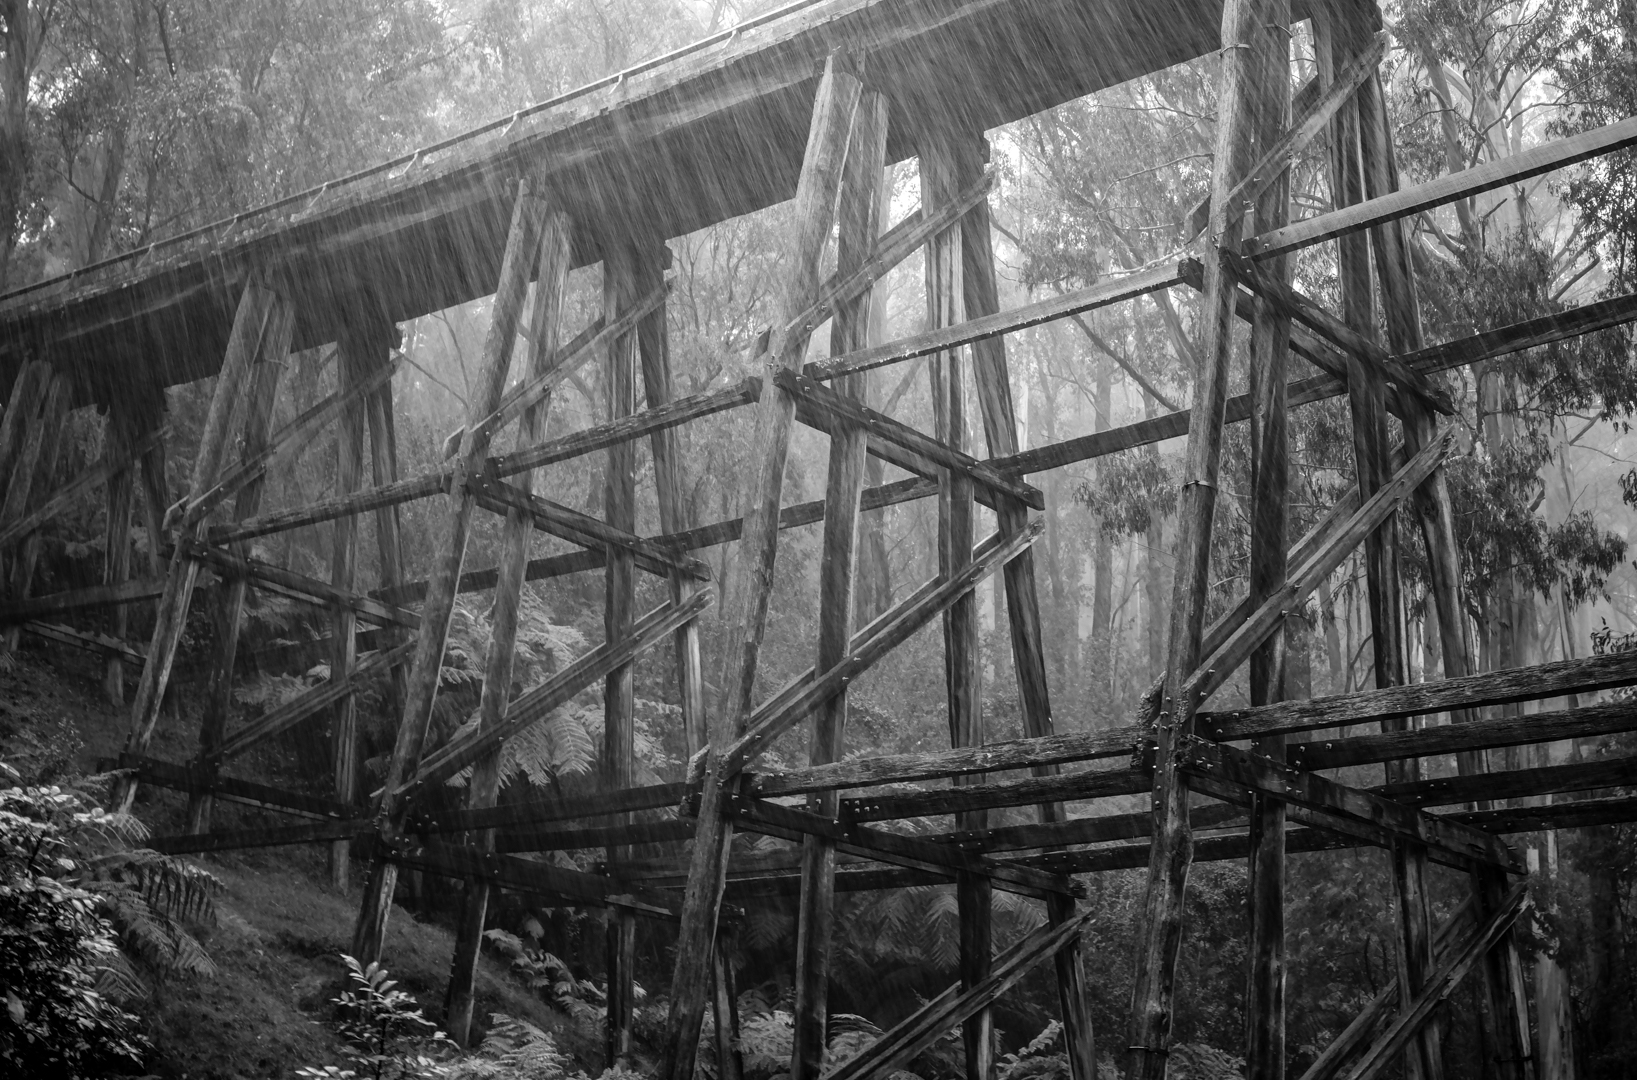 102_noojee-rail-bridge-in-downpour-e0cb98d31e8610213b97660db974797104060fd4